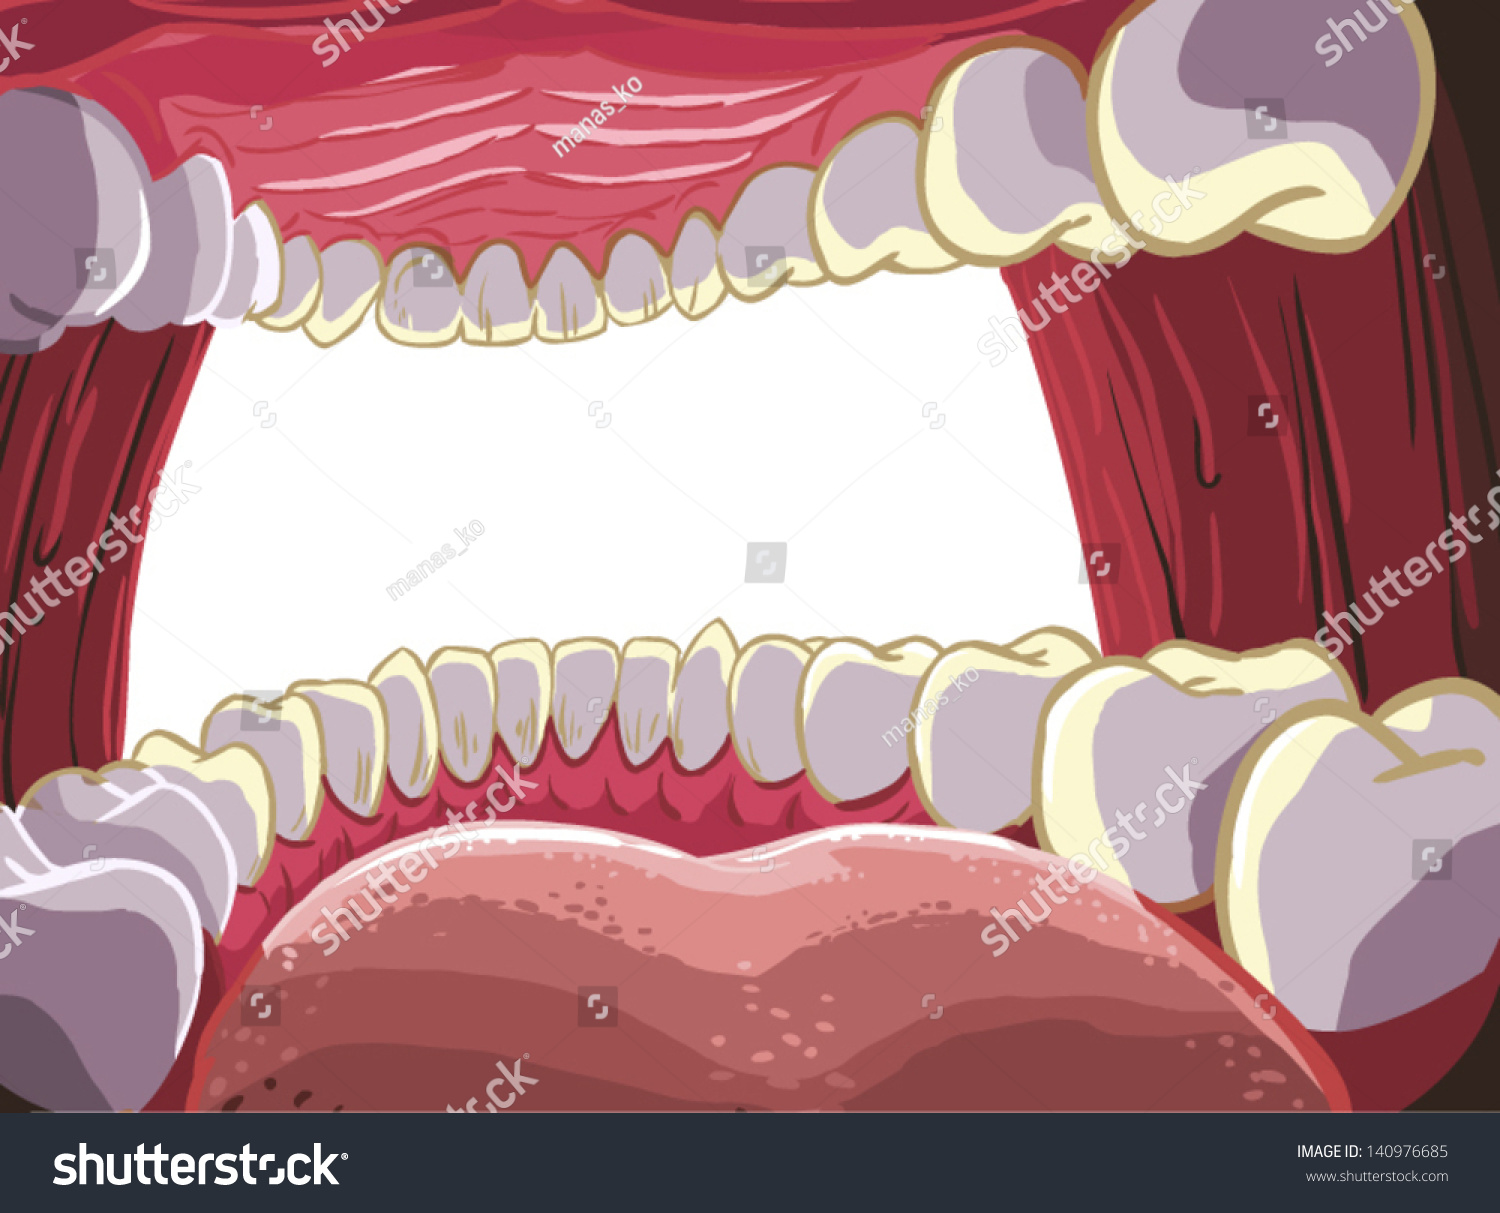 health tongue diagram 1990 crx stereo wiring mouth teeth inside stock vector 140976685 - shutterstock